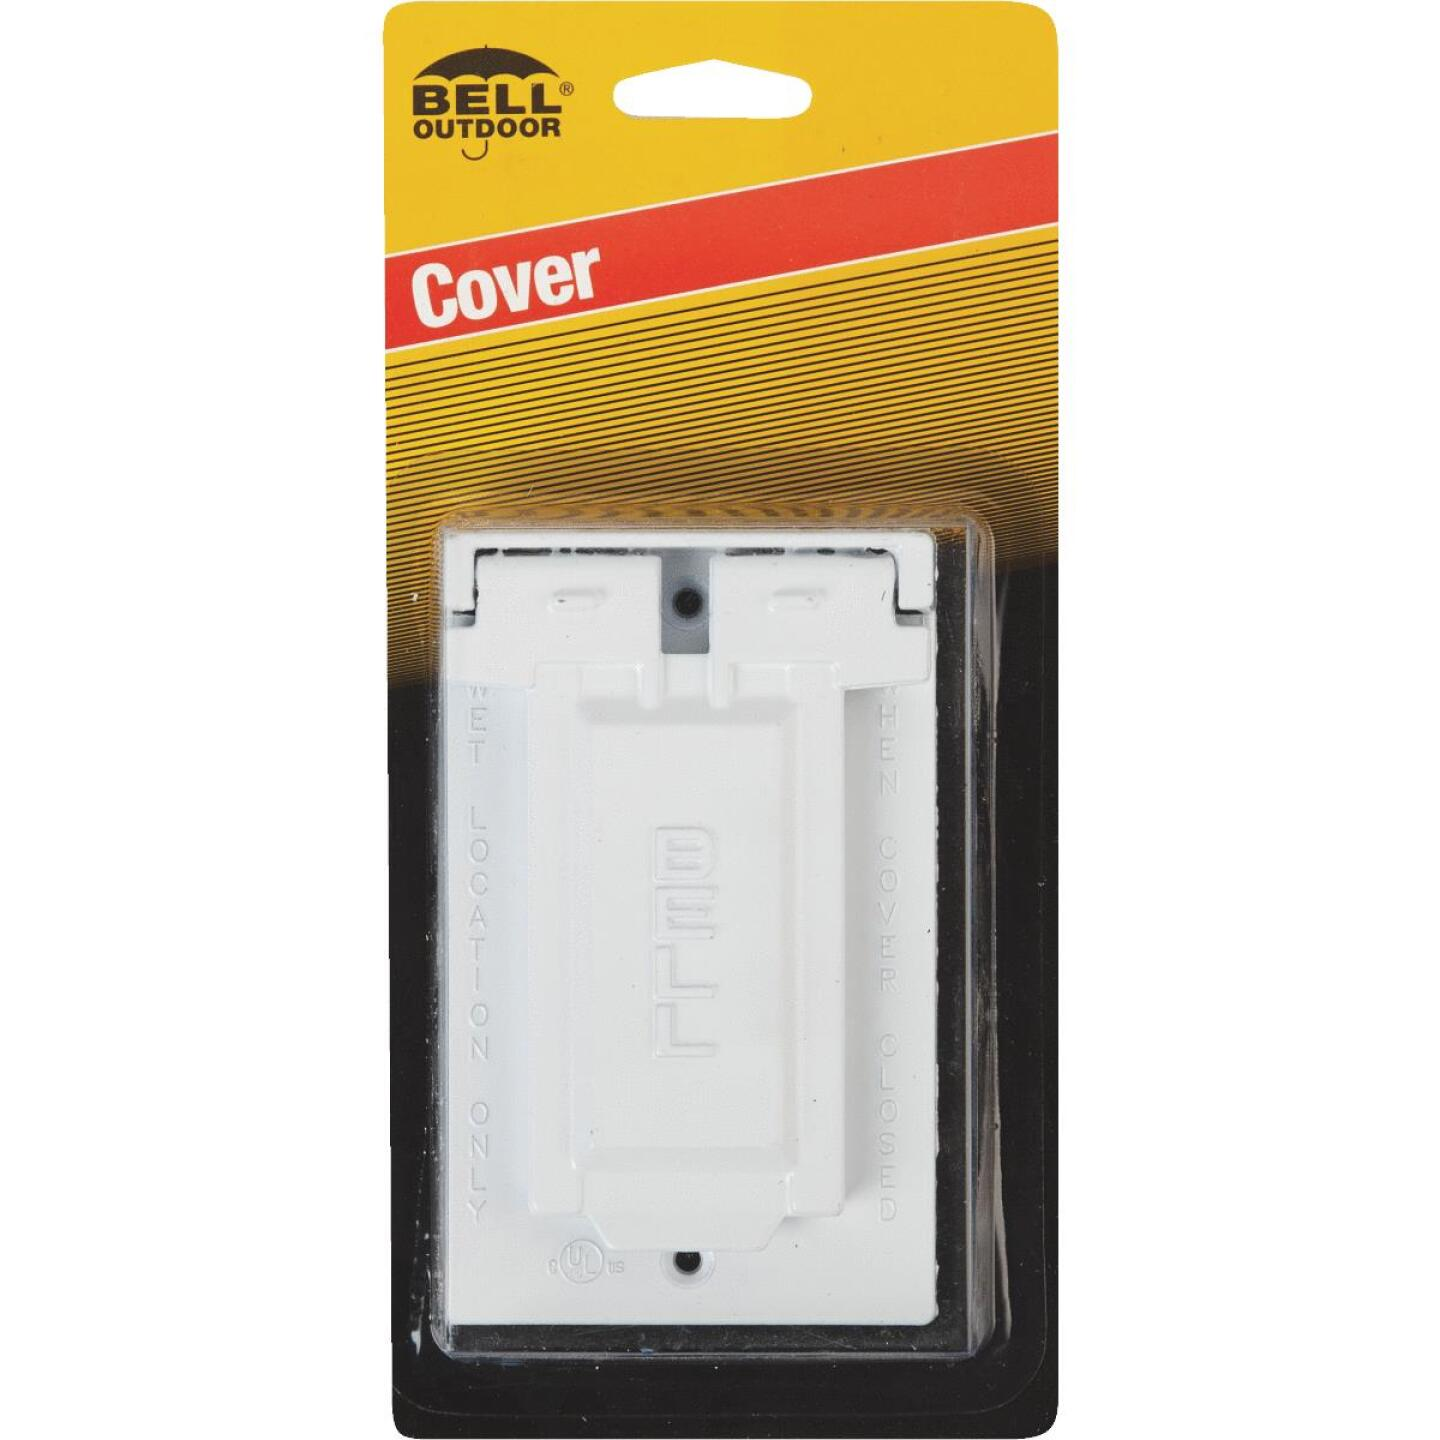 Bell Single Gang Vertical Mount Die-Cast Metal White Weatherproof GFCI Outdoor Outlet Cover Image 2